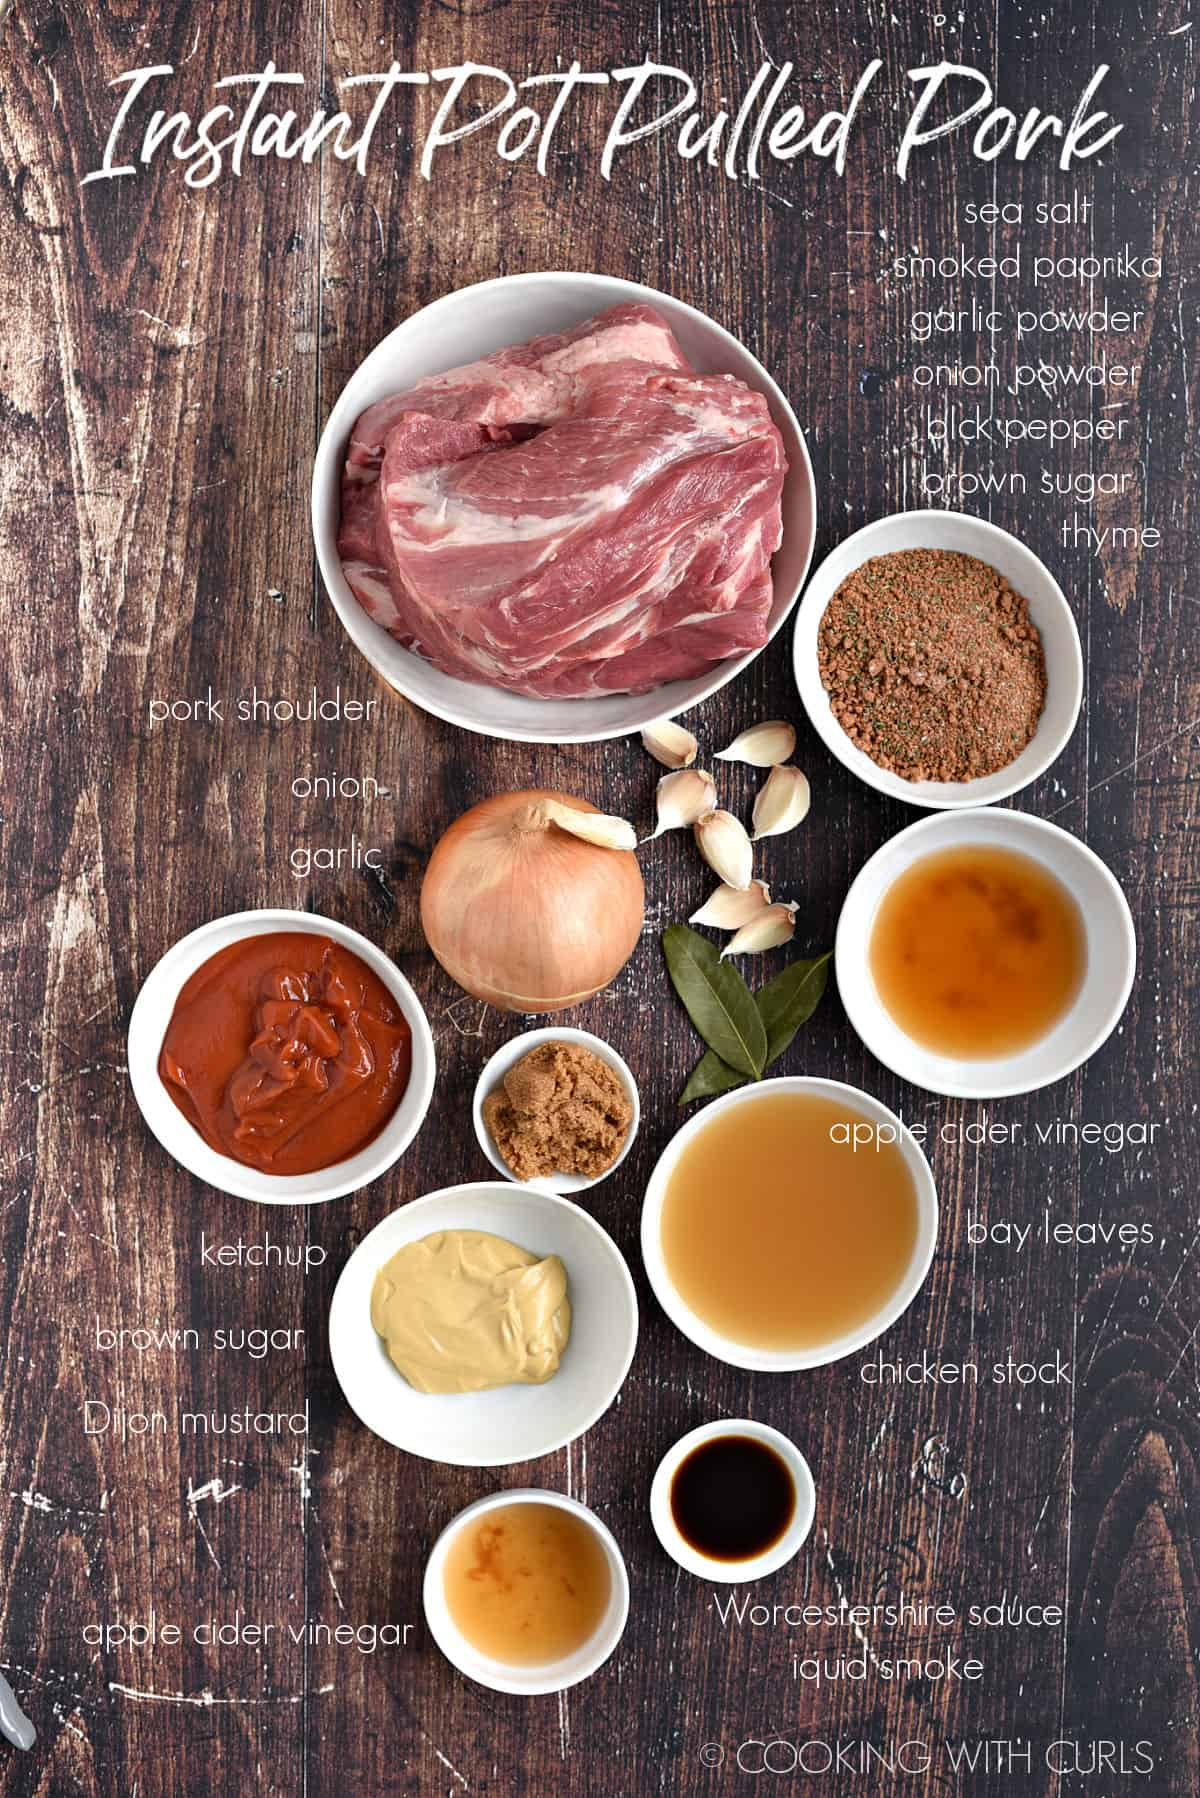 Ingredients to make Instant Pot Pulled Pork  in white bowls.